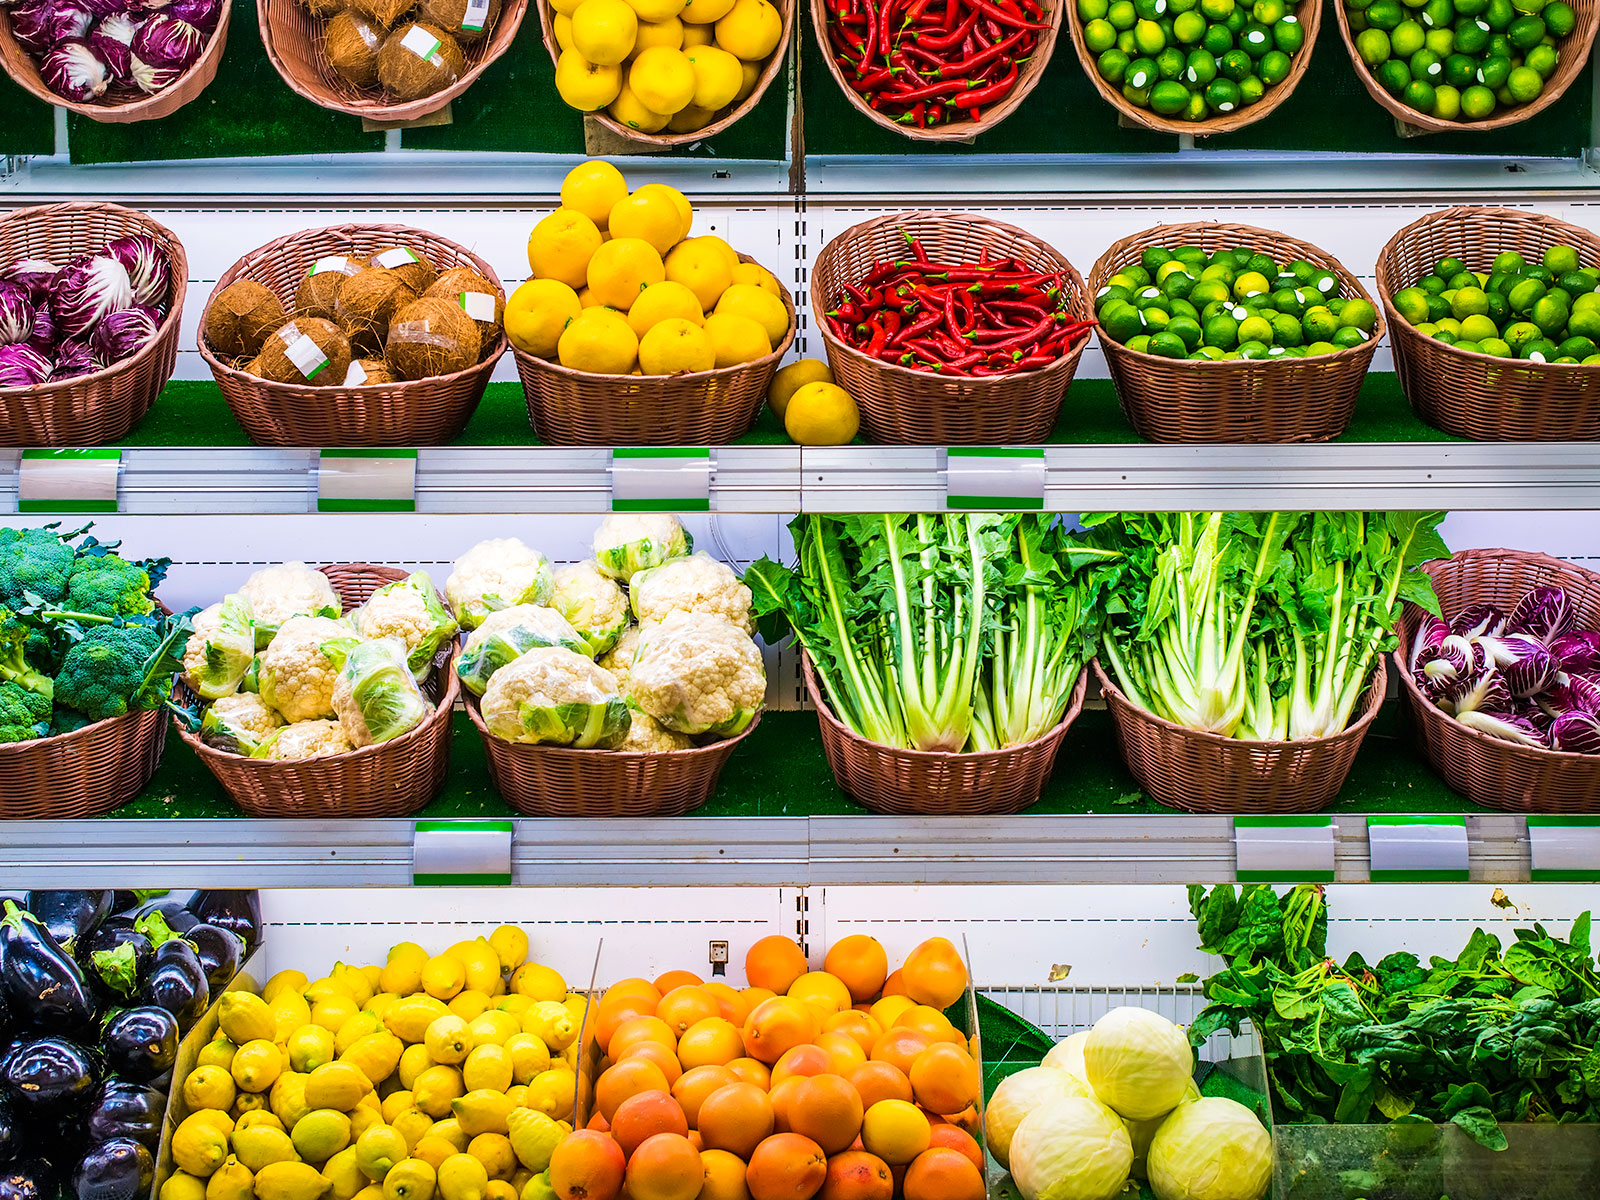 attractive produce aisle in grocery stores